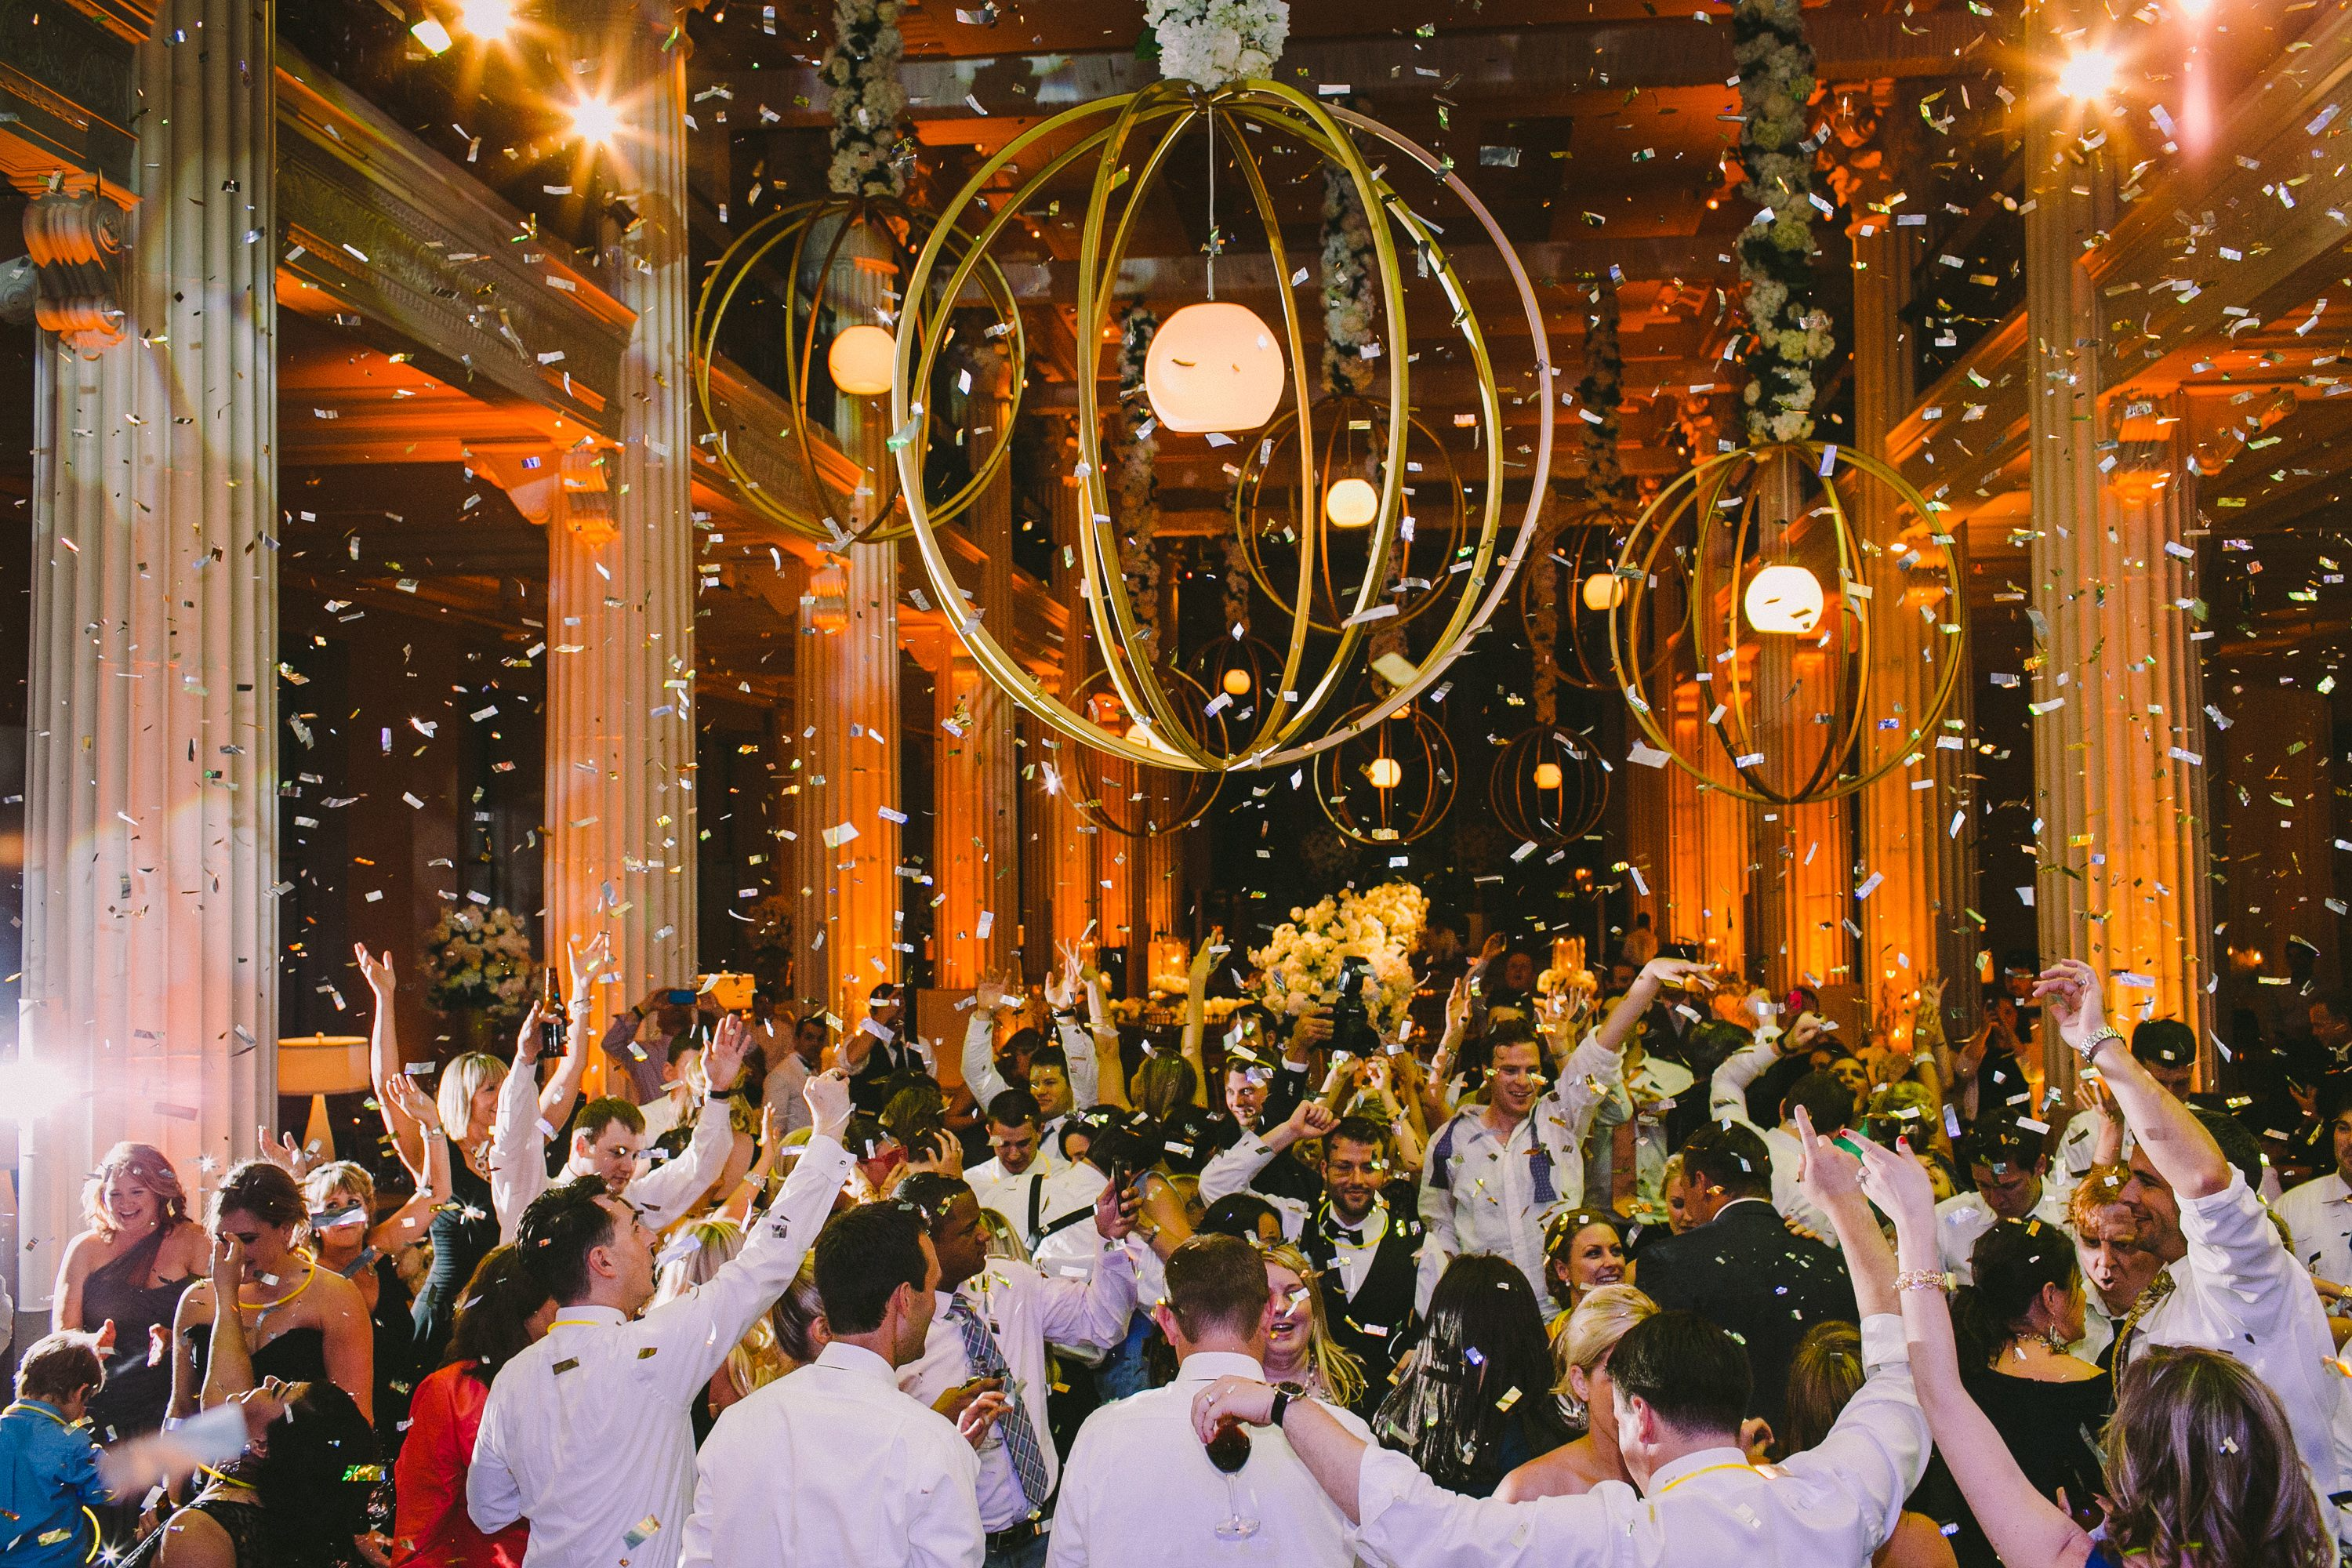 Gold orb over wedding dance floor with metallic confetti